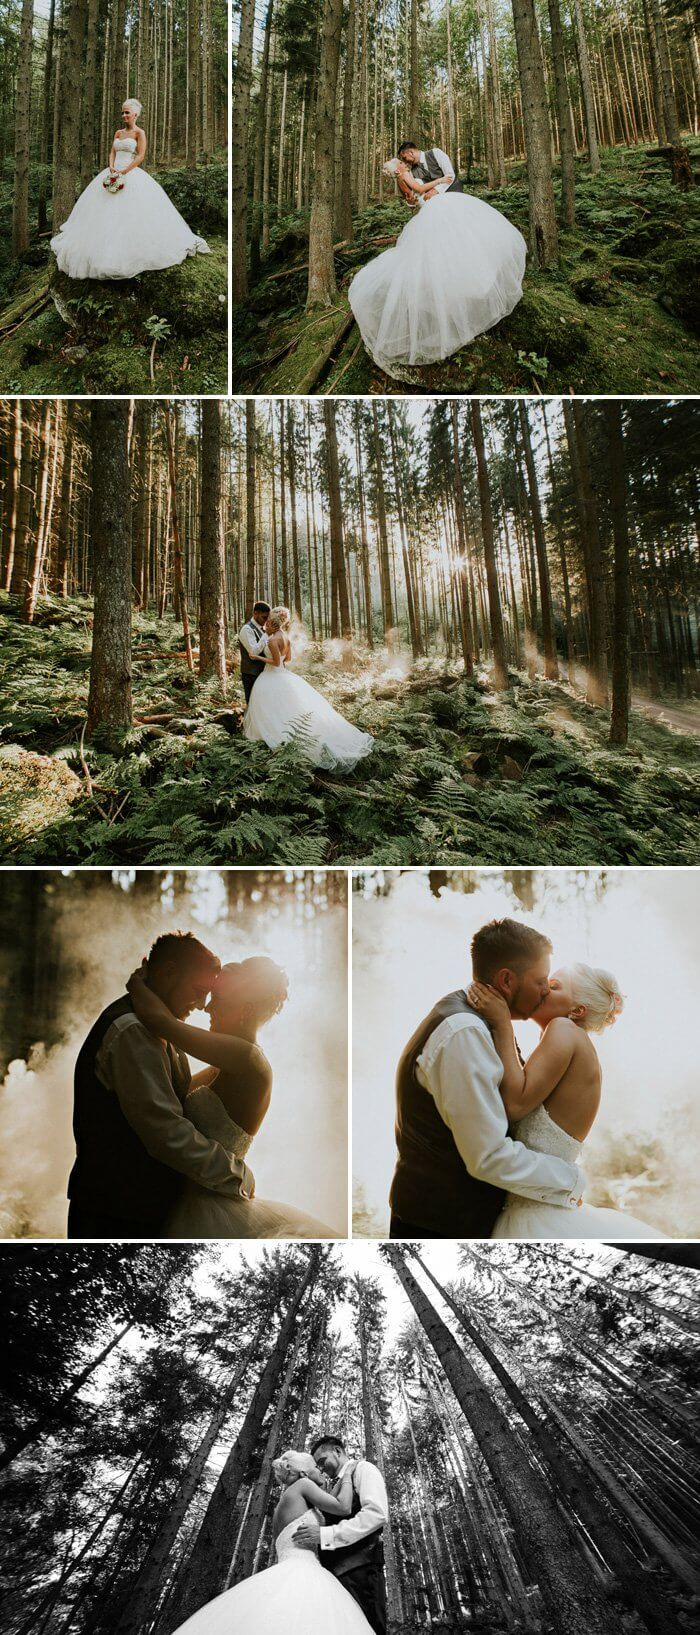 After Wedding Shooting im Wald